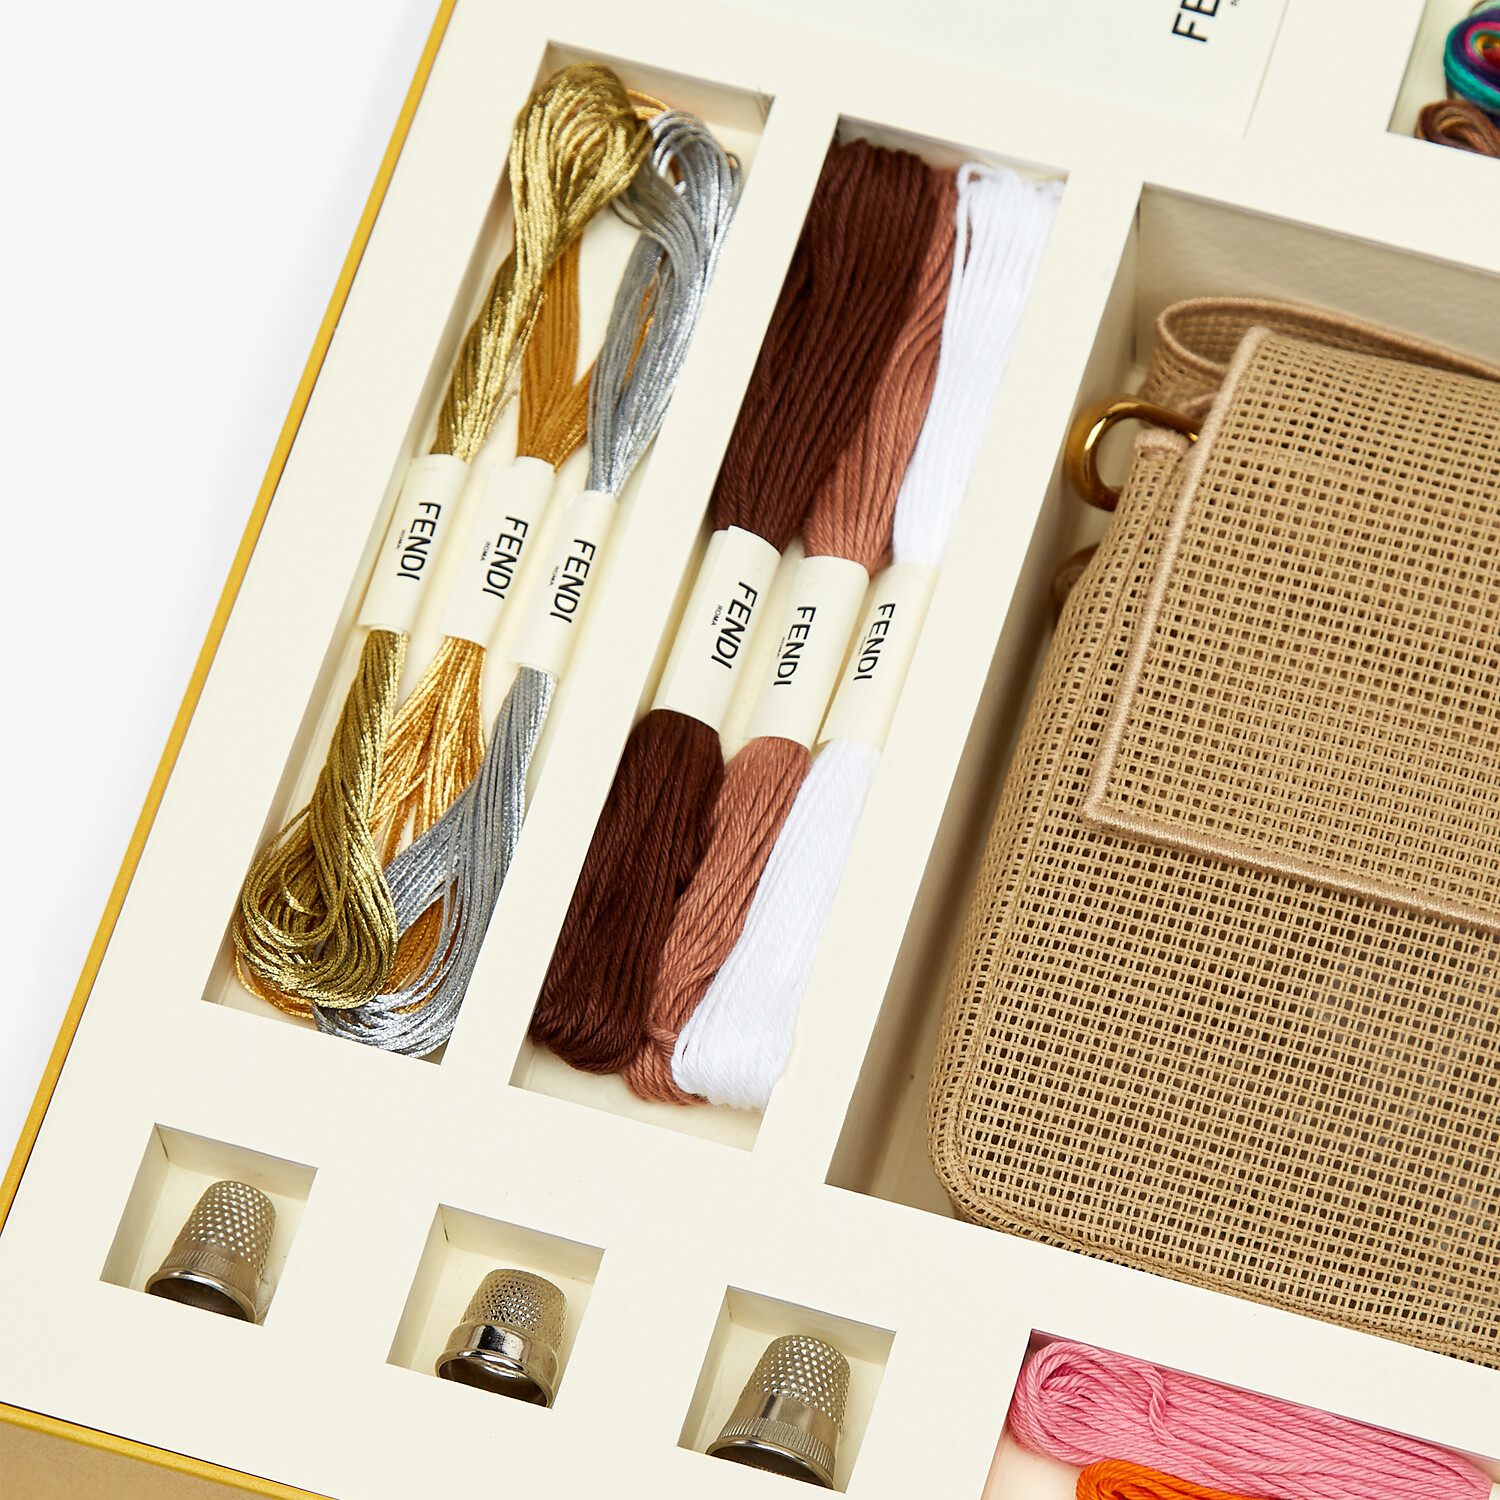 FENDI BAGUETTE - Bag with embroidery kit for adding a personal touch - view 6 detail